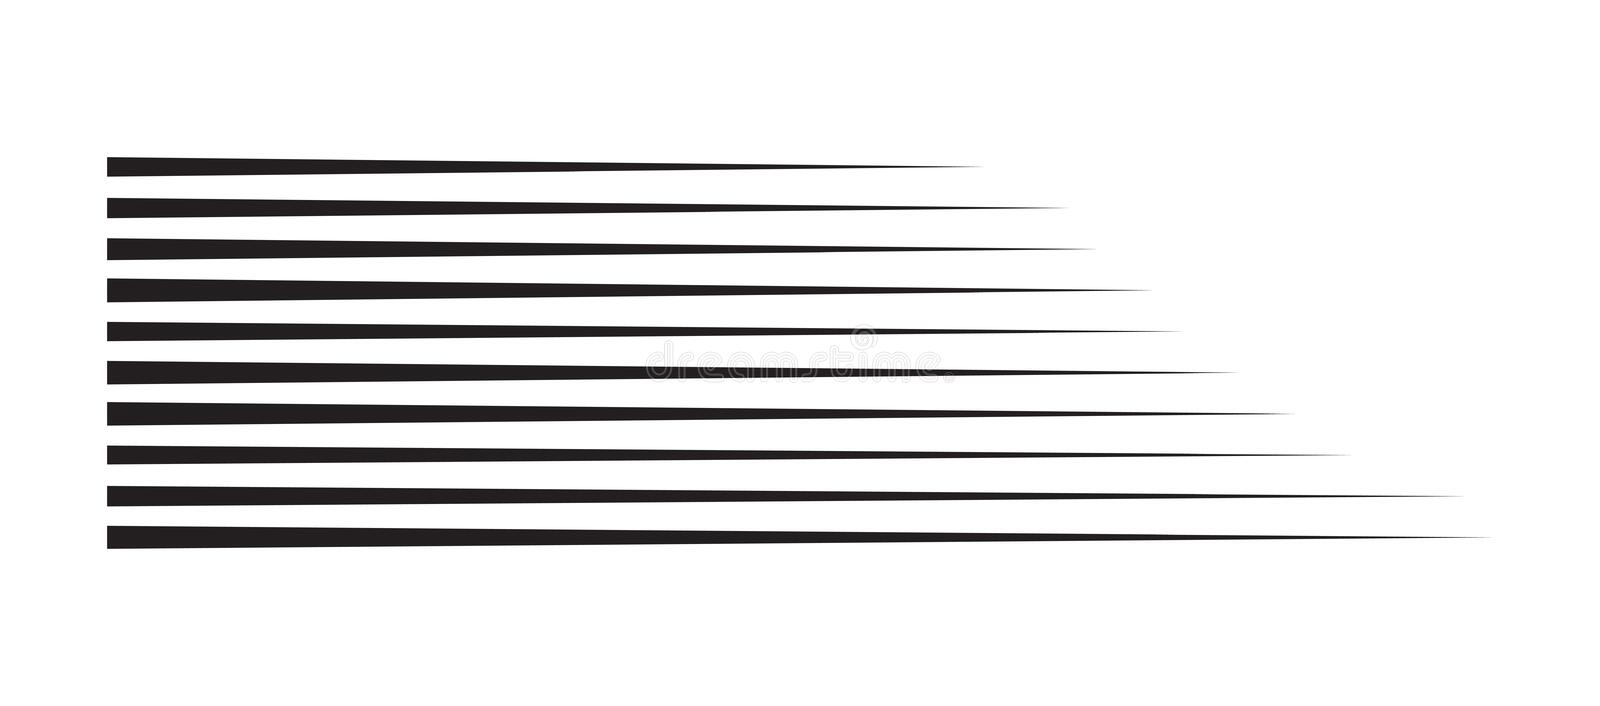 Horizontal motion speed lines for comic book royalty free illustration